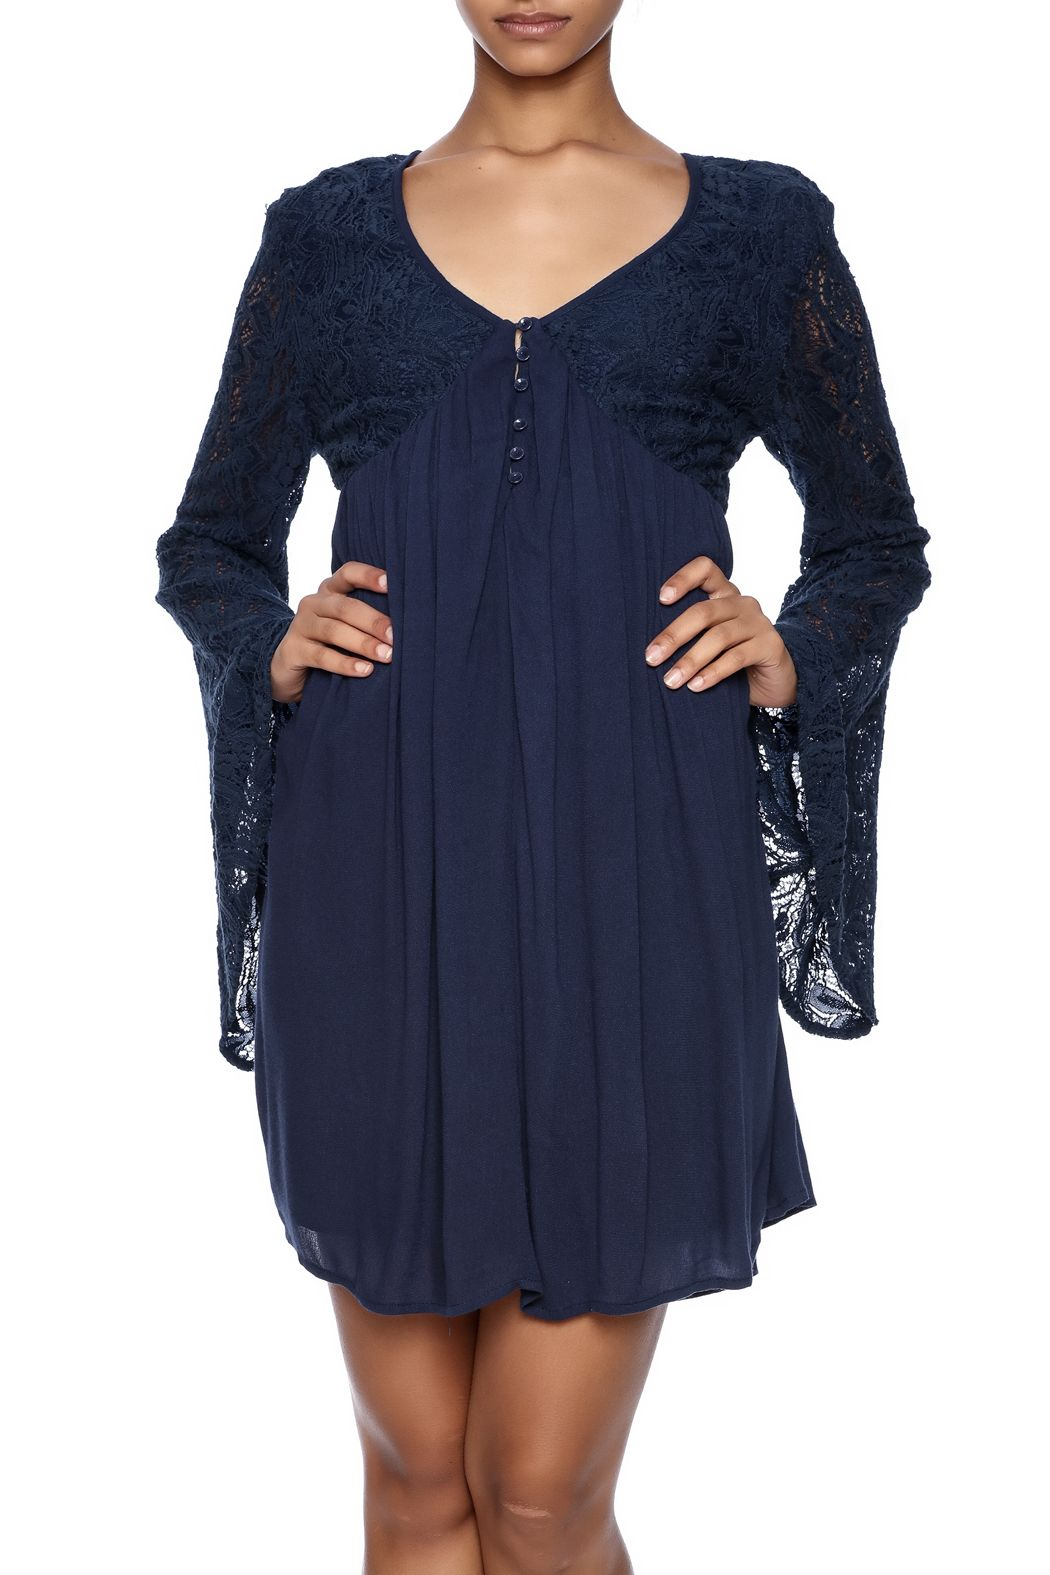 Navy blue dress with long bell lace sleeves, sheer back and a lined skirt.    Leanne Lacy Dress by LoveRiche. Clothing - Dresses - Long Sleeve California